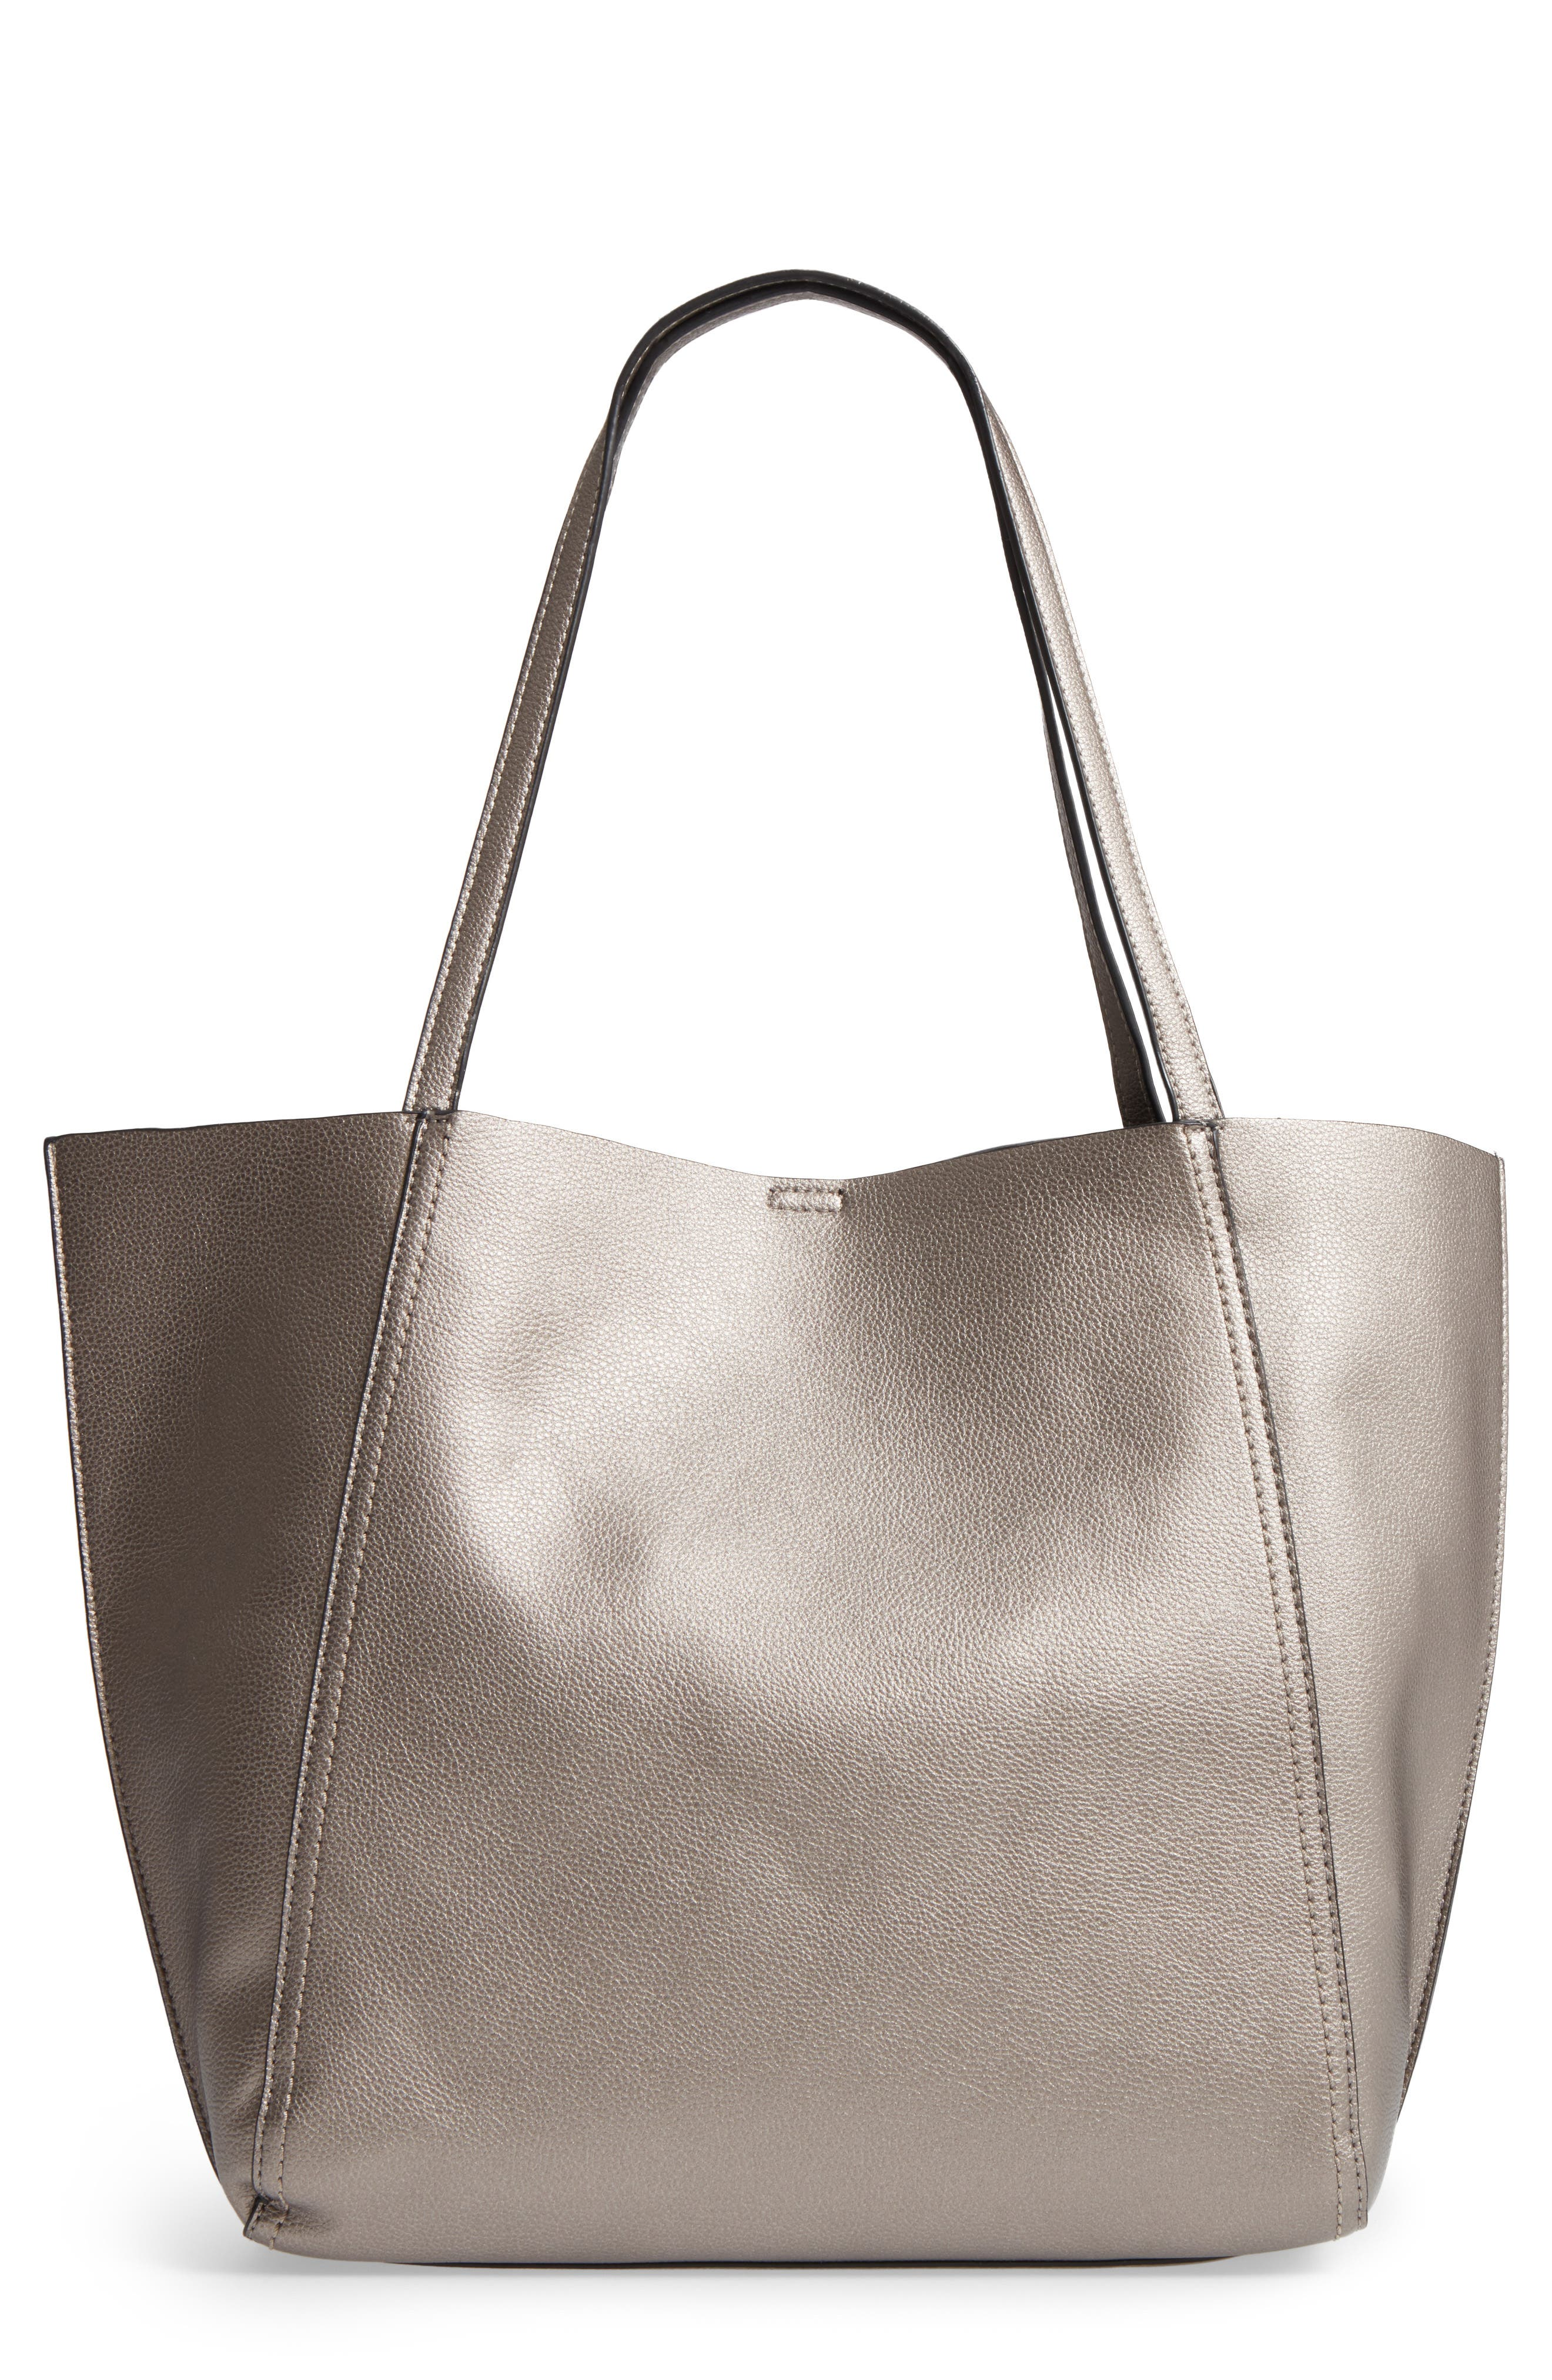 Alternate Image 1 Selected - Phase 3 Cut Edge Tote